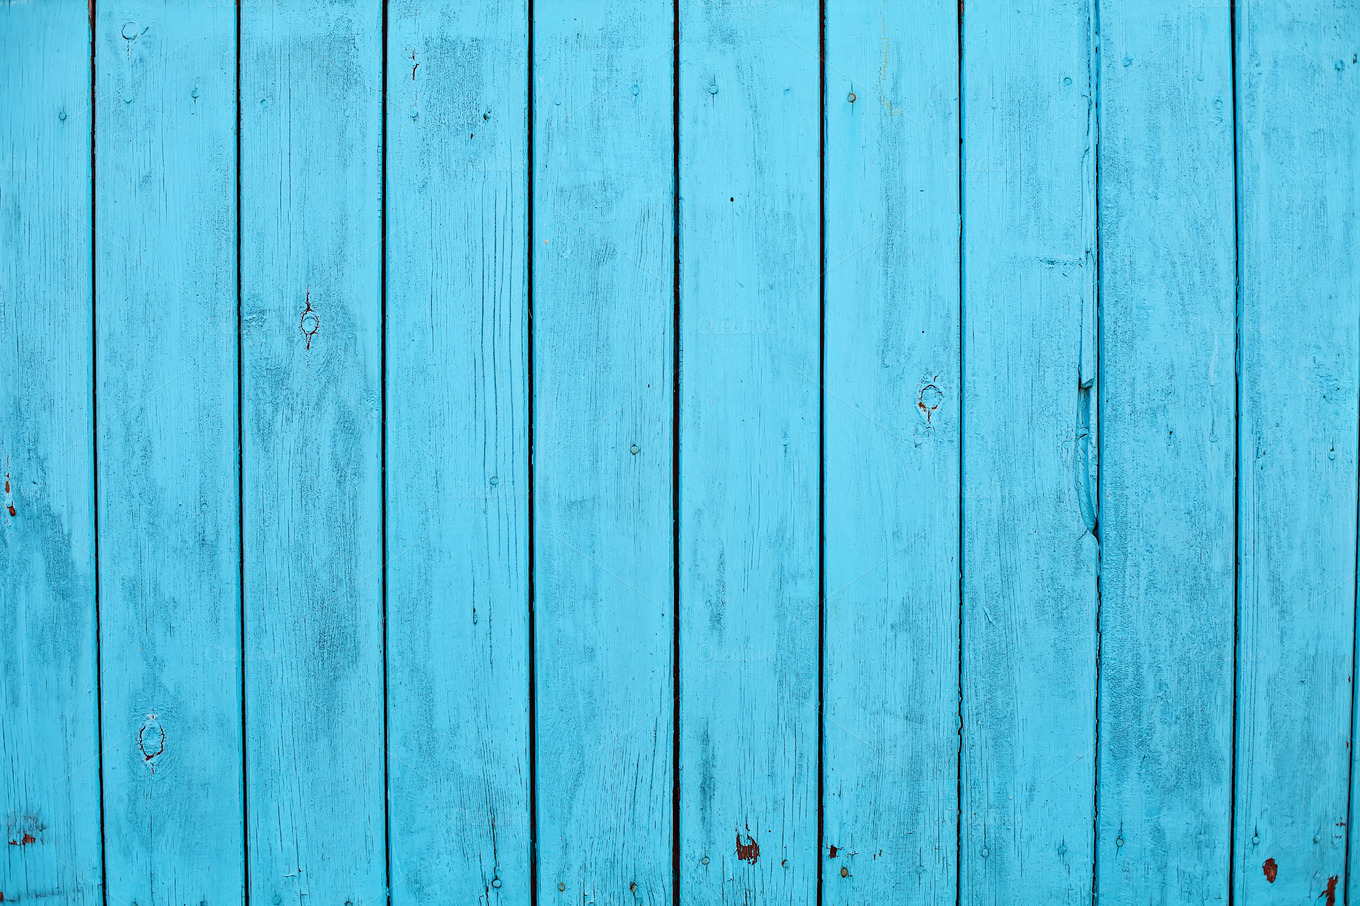 Blue old wooden background texture d ~ Abstract Photos on Creative ...: https://creativemarket.com/OlhaKlein/101872-Blue-old-wooden...